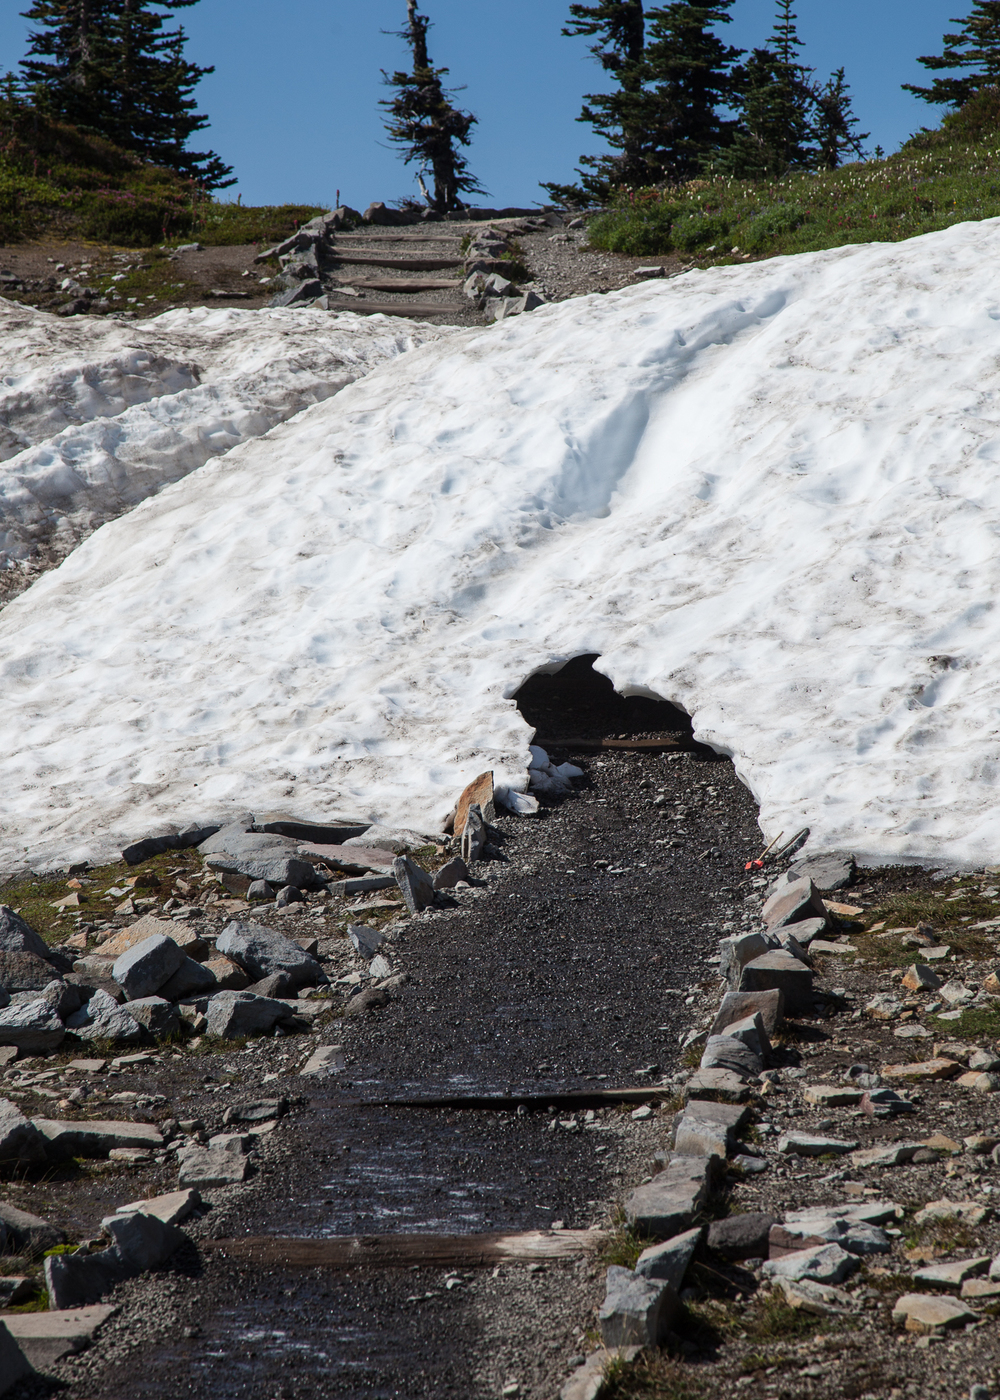 Even in late August, there were still spots where the snow covered the path.